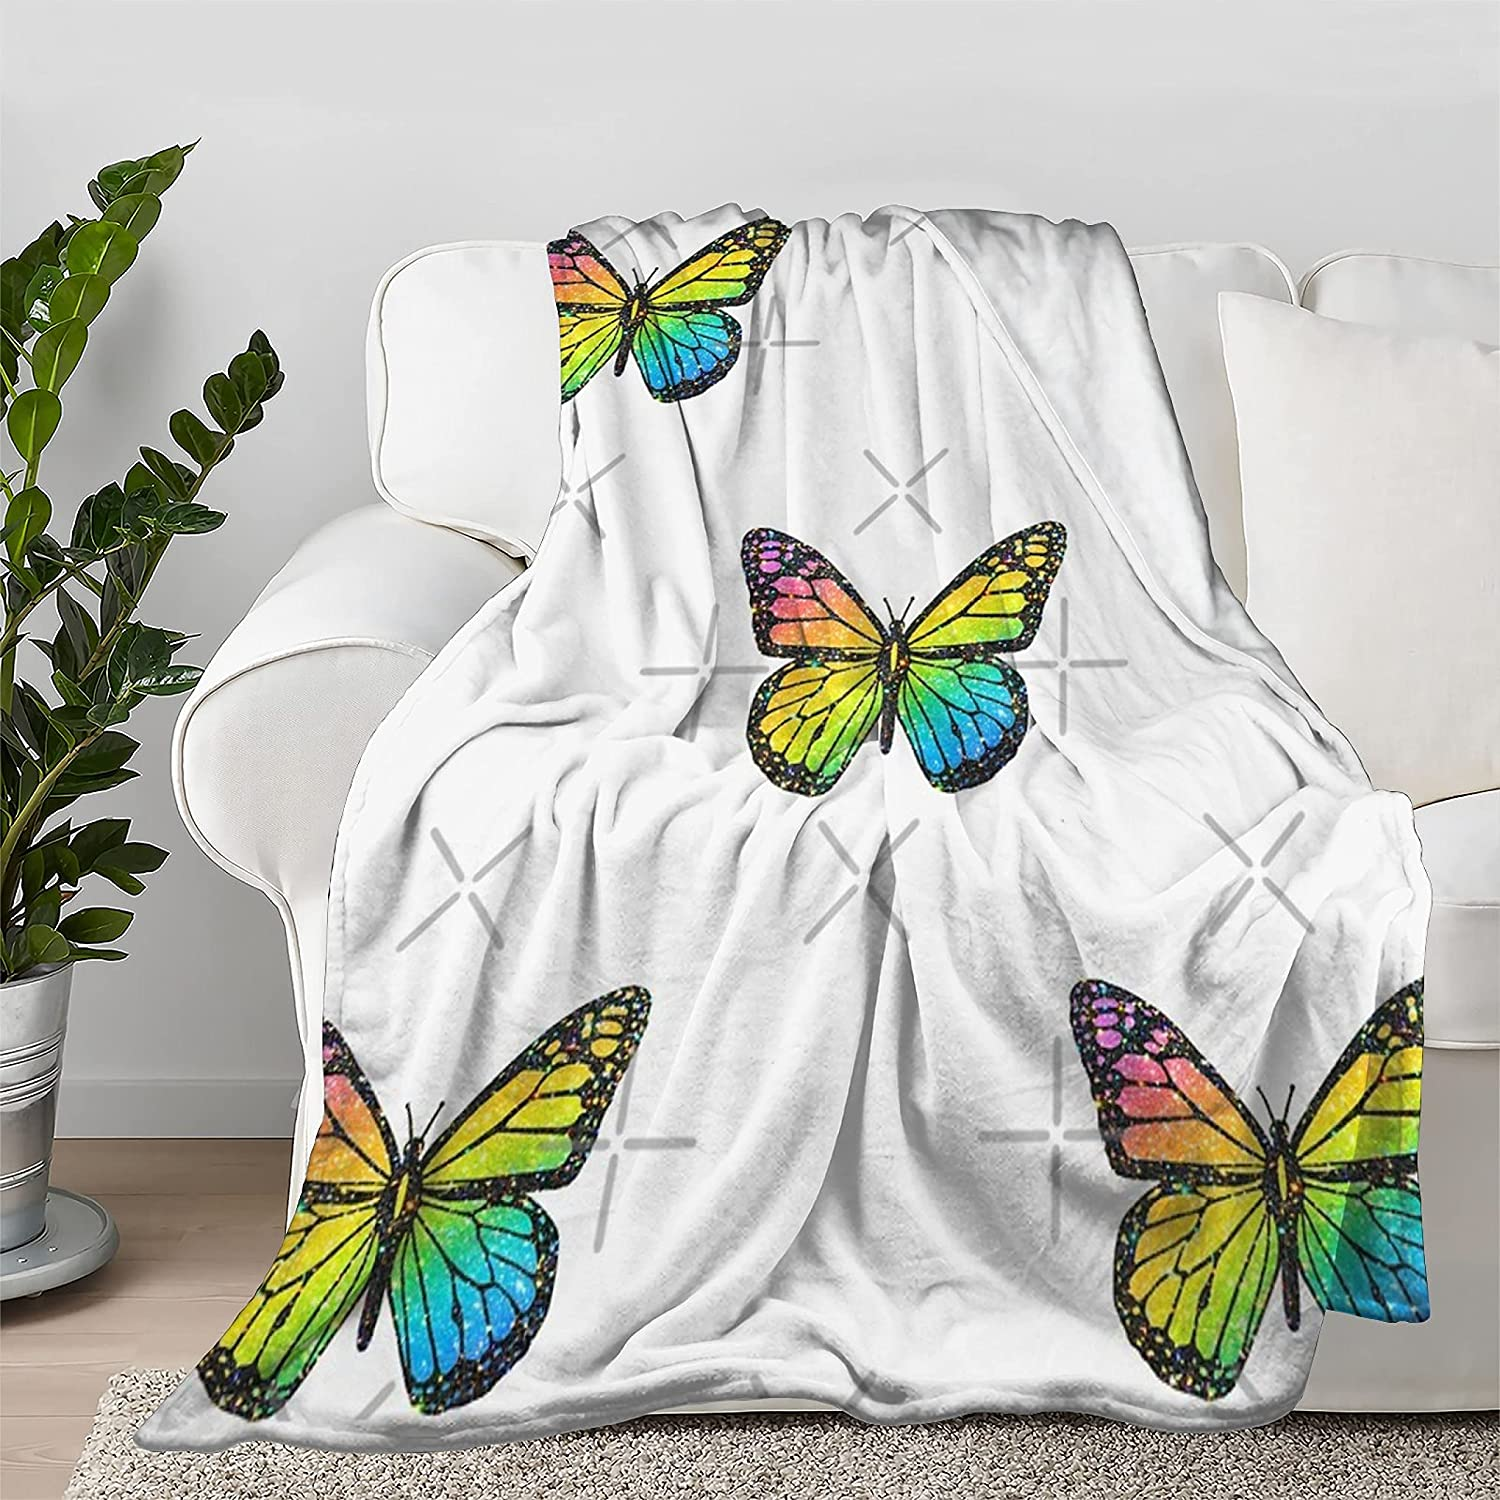 Lokapala Butterfly Recommended Set Throw Blanket Ranking TOP20 Bedspread Ult Quilt Flannel